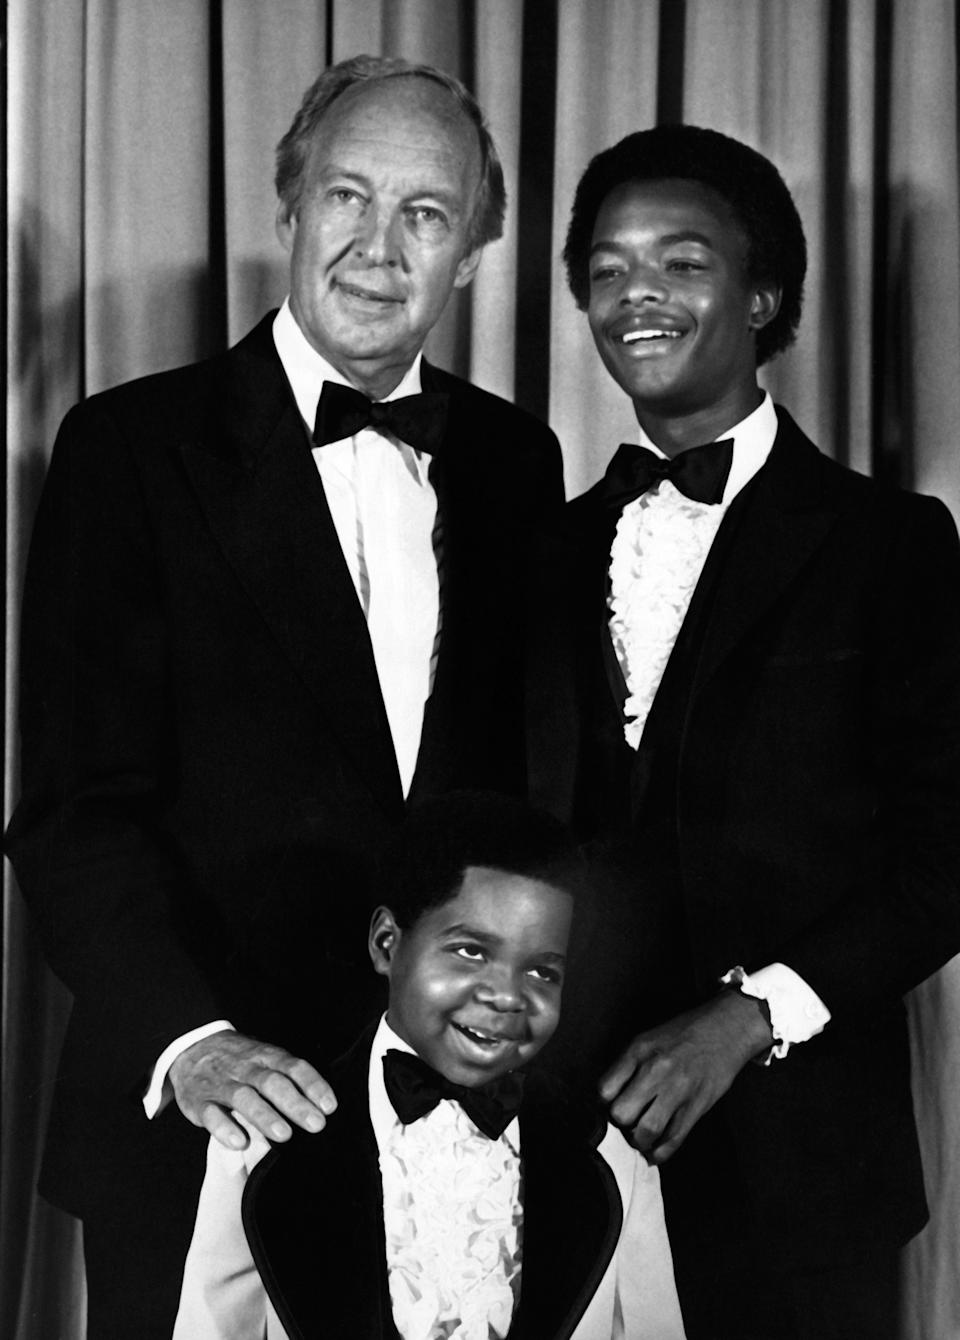 PASADENA, CA - JANUARY 27:  Actors Conrad Baines, Gary Coleman and Todd Bridges attend 33rd Annual Primetime Emmy Awards on January 27, 1980 at the Pasadena Civic Auditorium in Pasadena, California. (Photo by Ron Galella, Ltd./Ron Galella Collection via Getty Images)